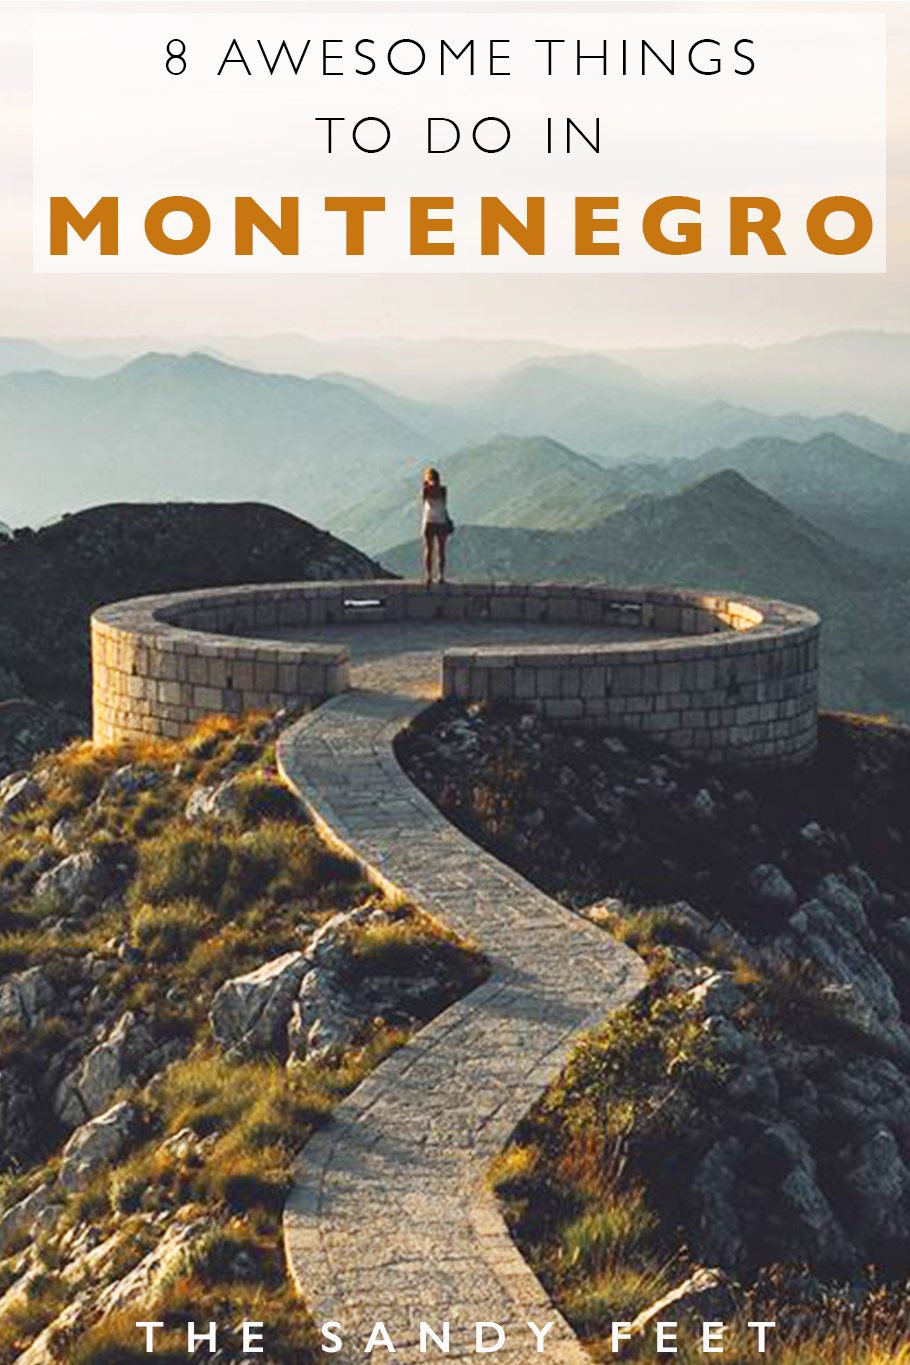 8 Adventurous Things To Do In Montenegro: All The Best Places To Visit In Montenegro Including Durmitor National Park, Lovcen National Park, Kotor, Adriatic Beaches, Rafting Tara River and more!